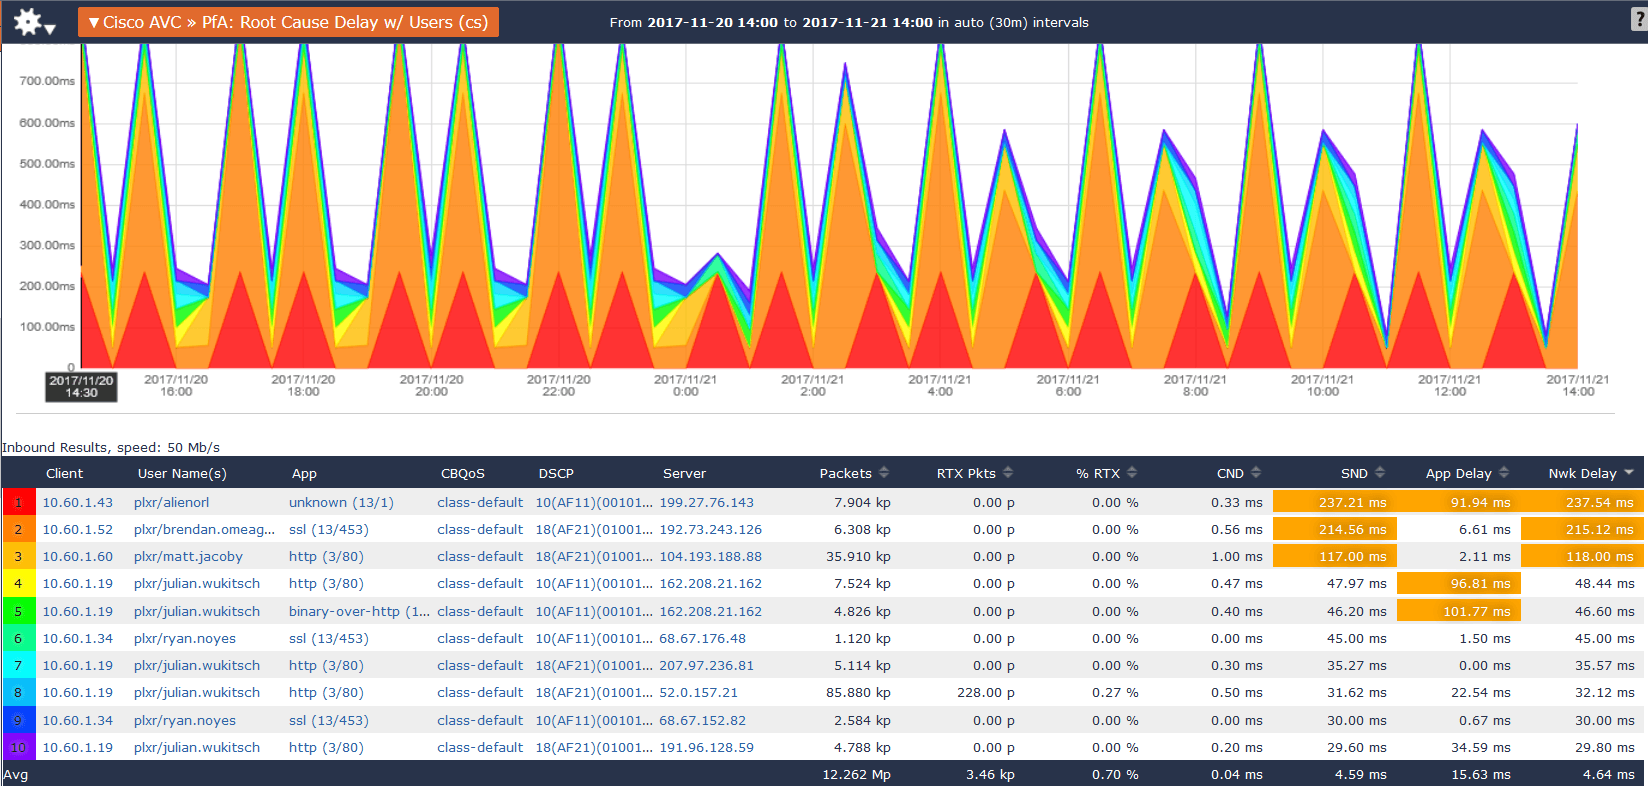 NetOps: Root Cause Delay Dashboard